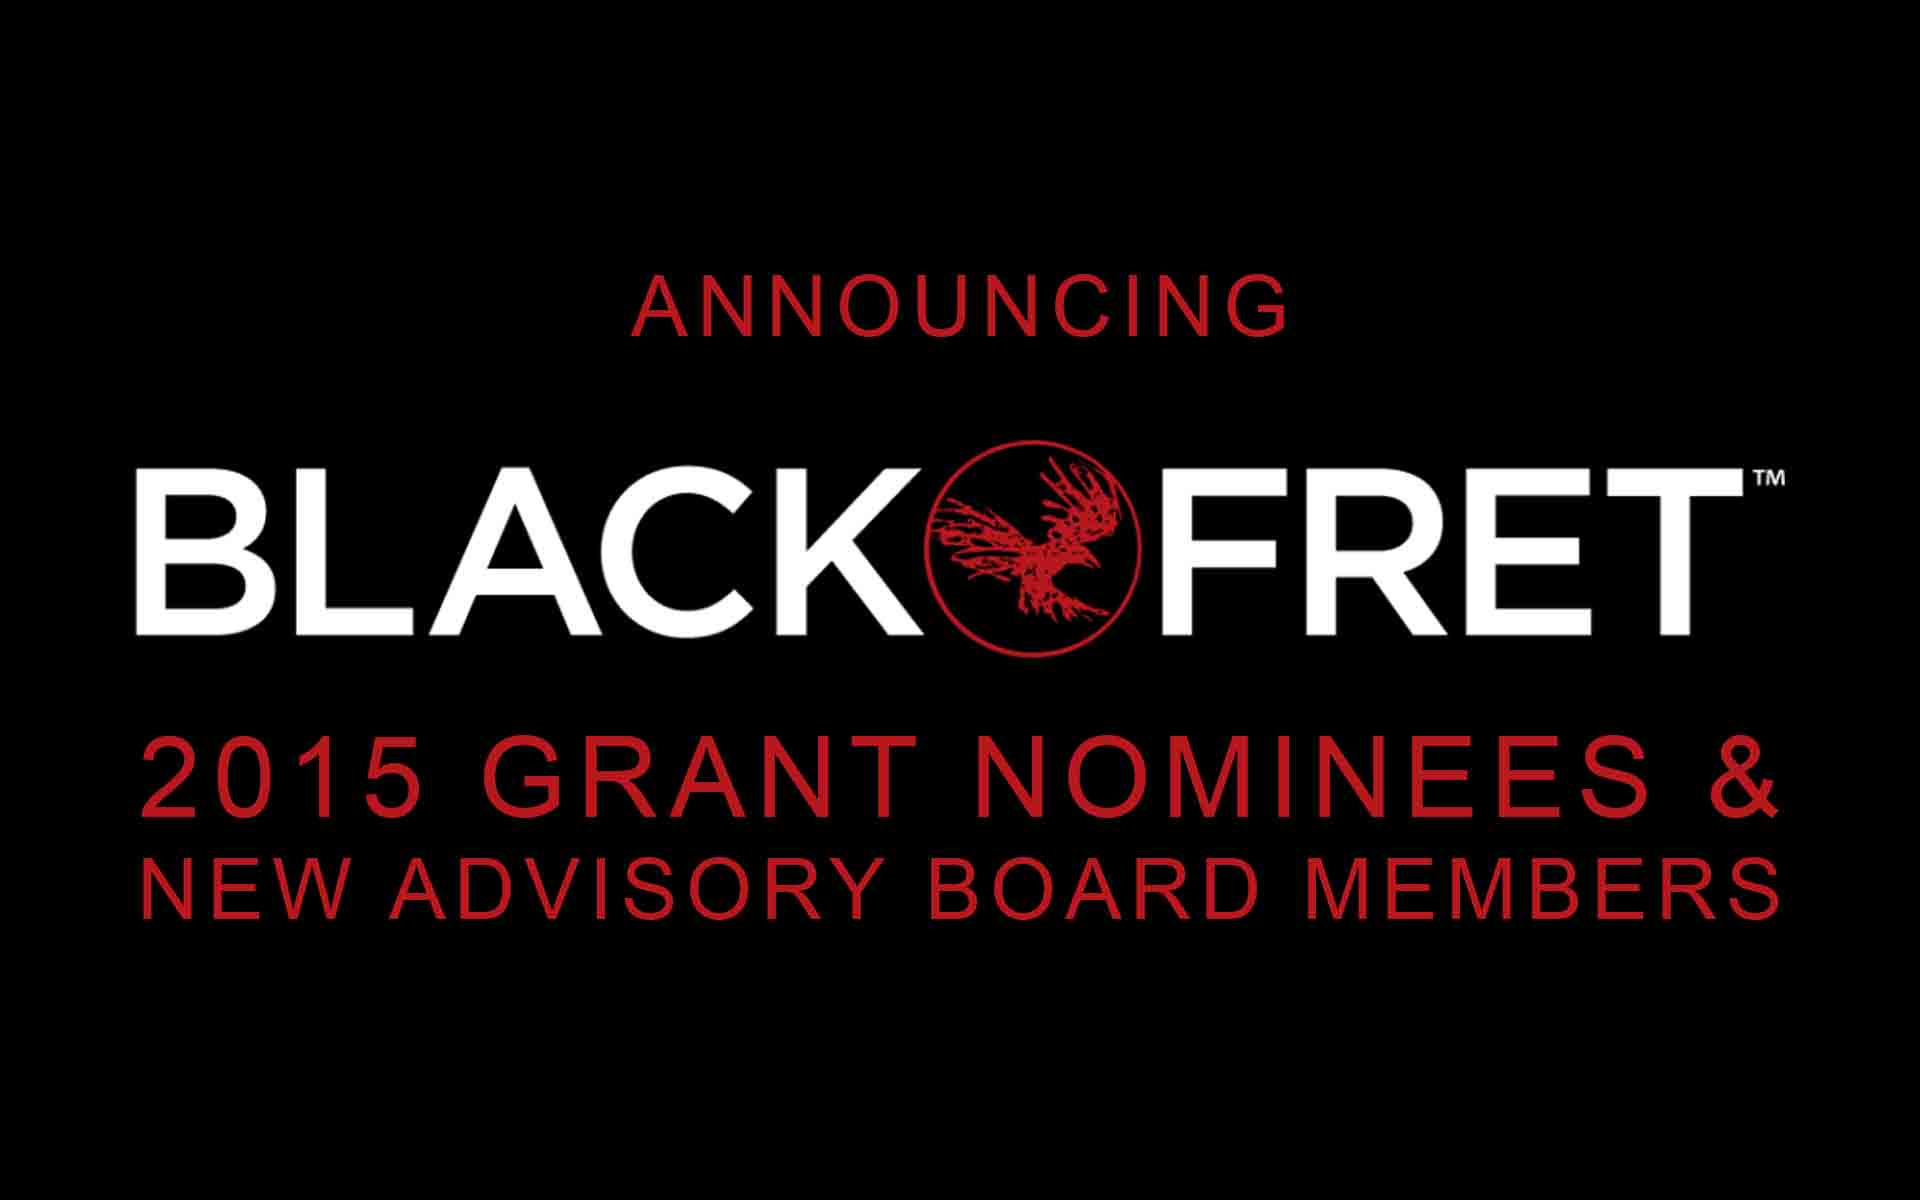 Announcing 2015 Grant Nominees